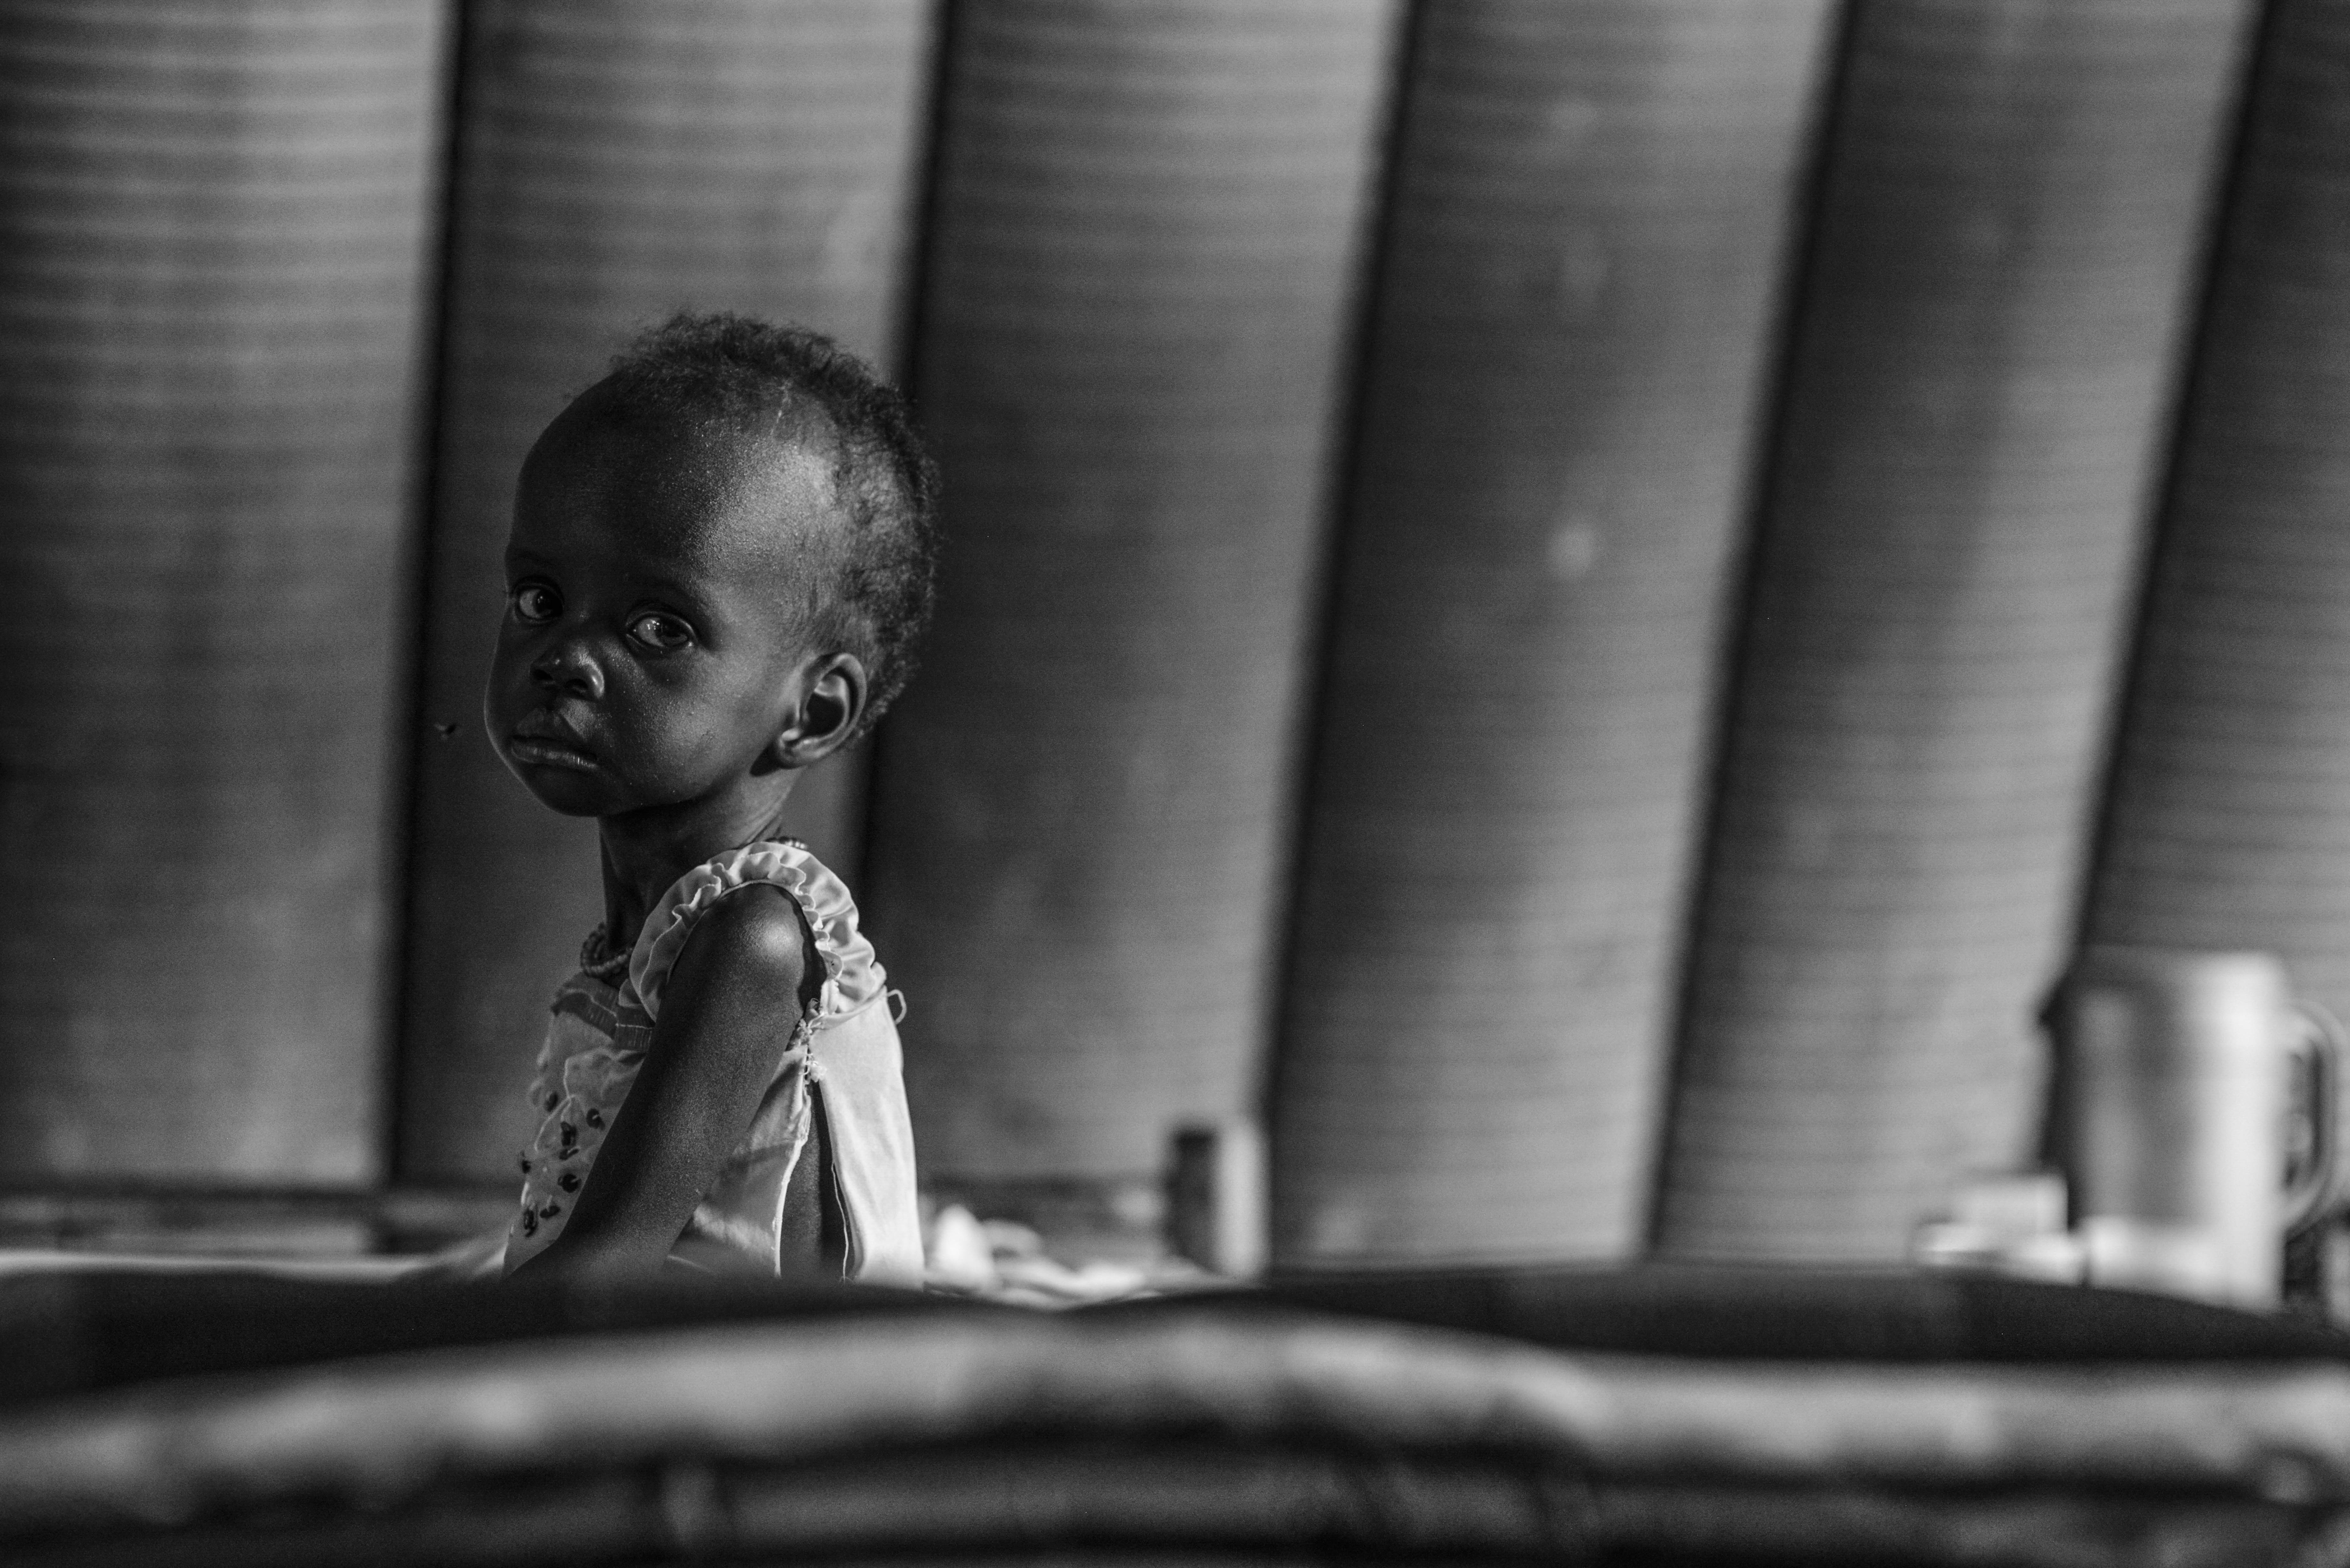 Nyakandai, 1, suffers from severe acute malnutrition in Juba, South Sudan. Such cases have increased due to the fighting in the country. Photo by Sebastian Rich for UNICEF